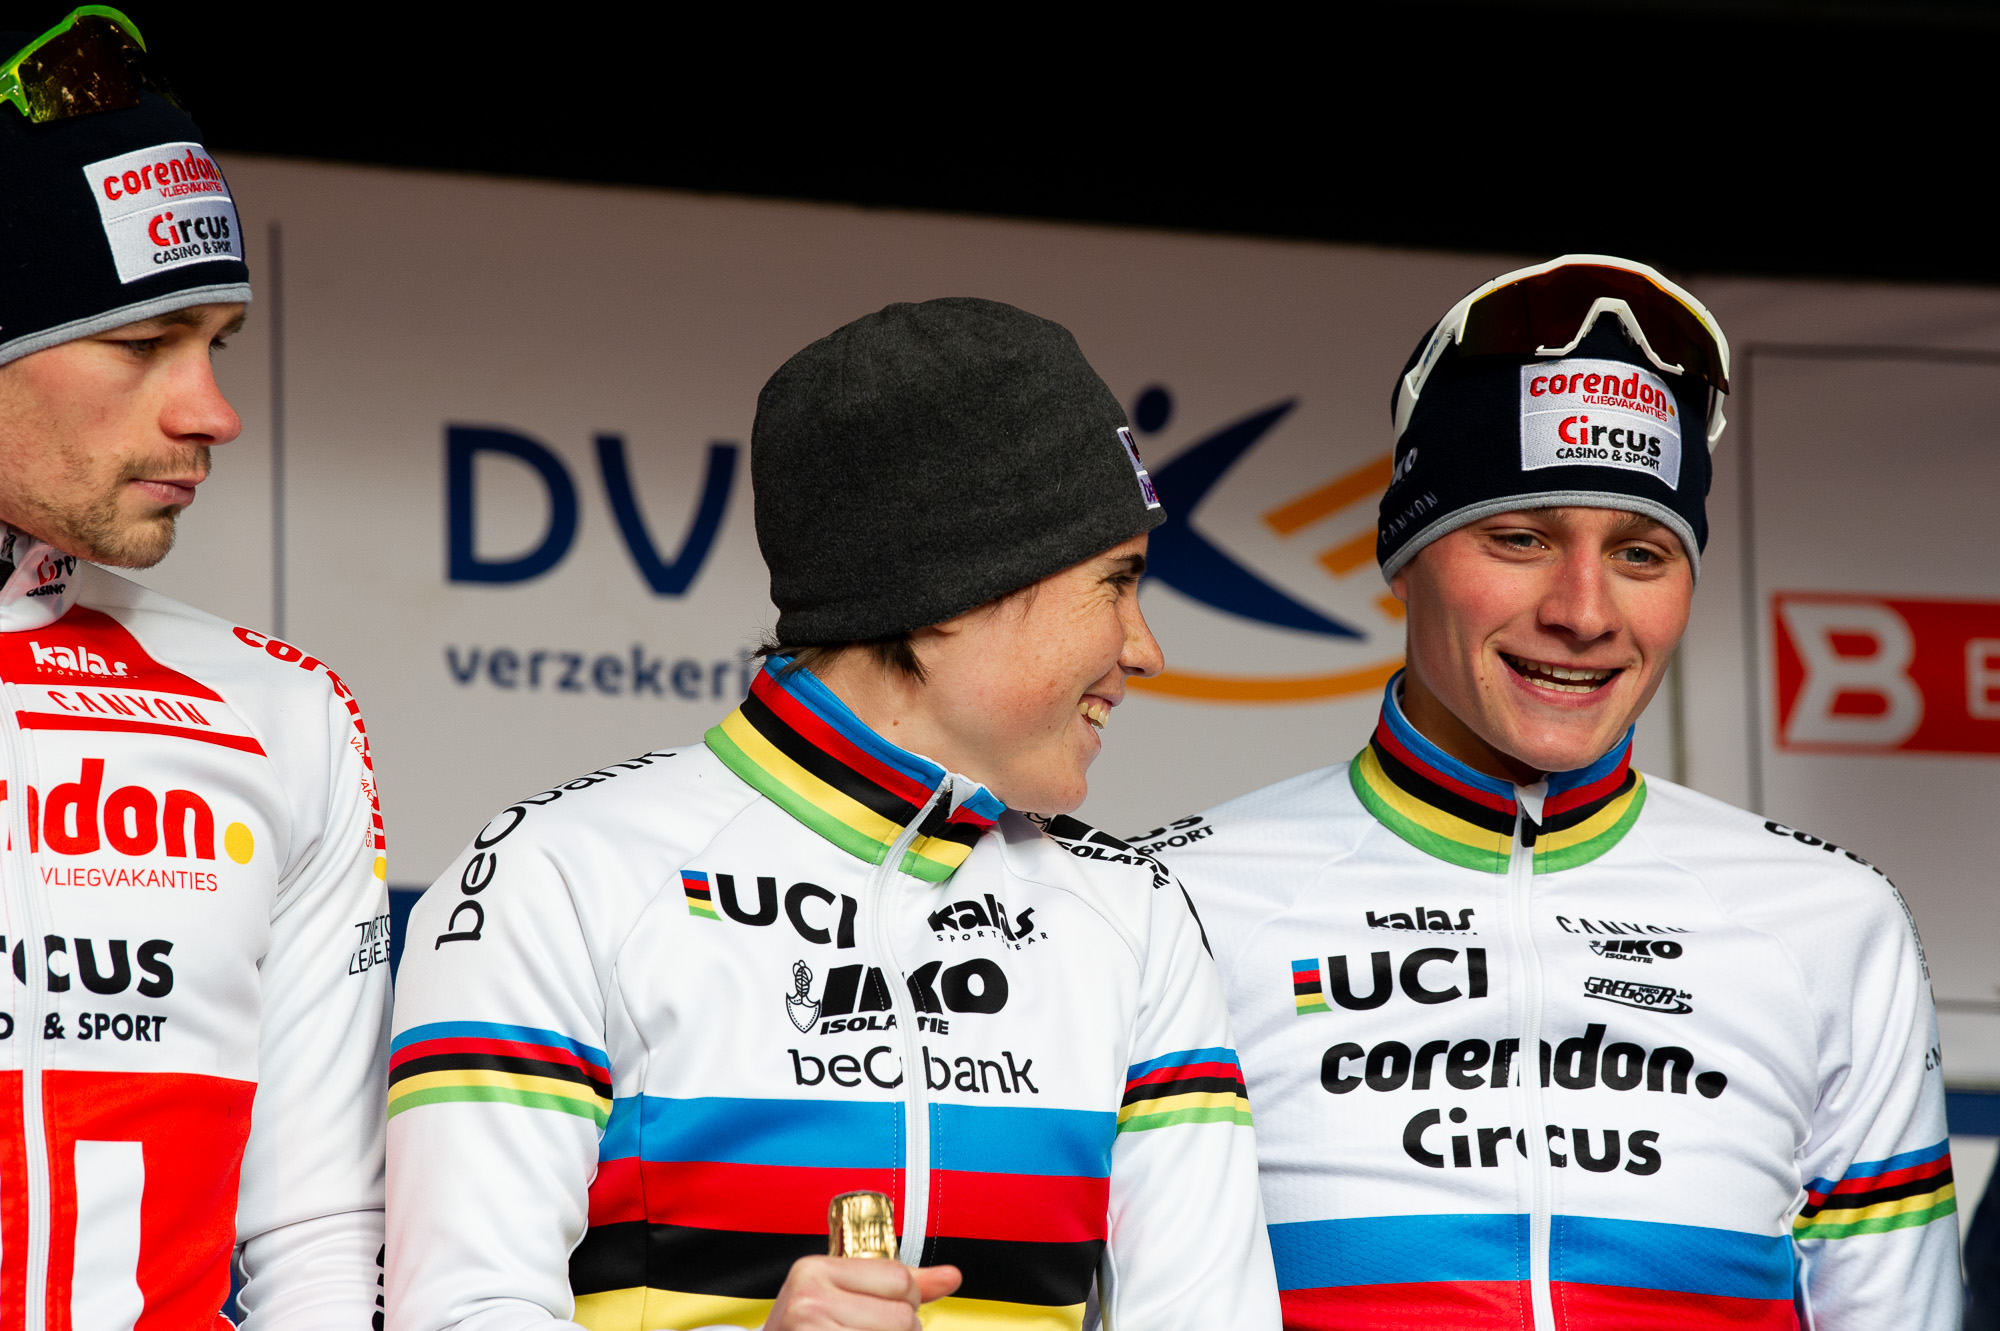 World Champions Sanne Cant and Mathieu van der Poel on the podium for best team in the final standings of the DVV Trofee.